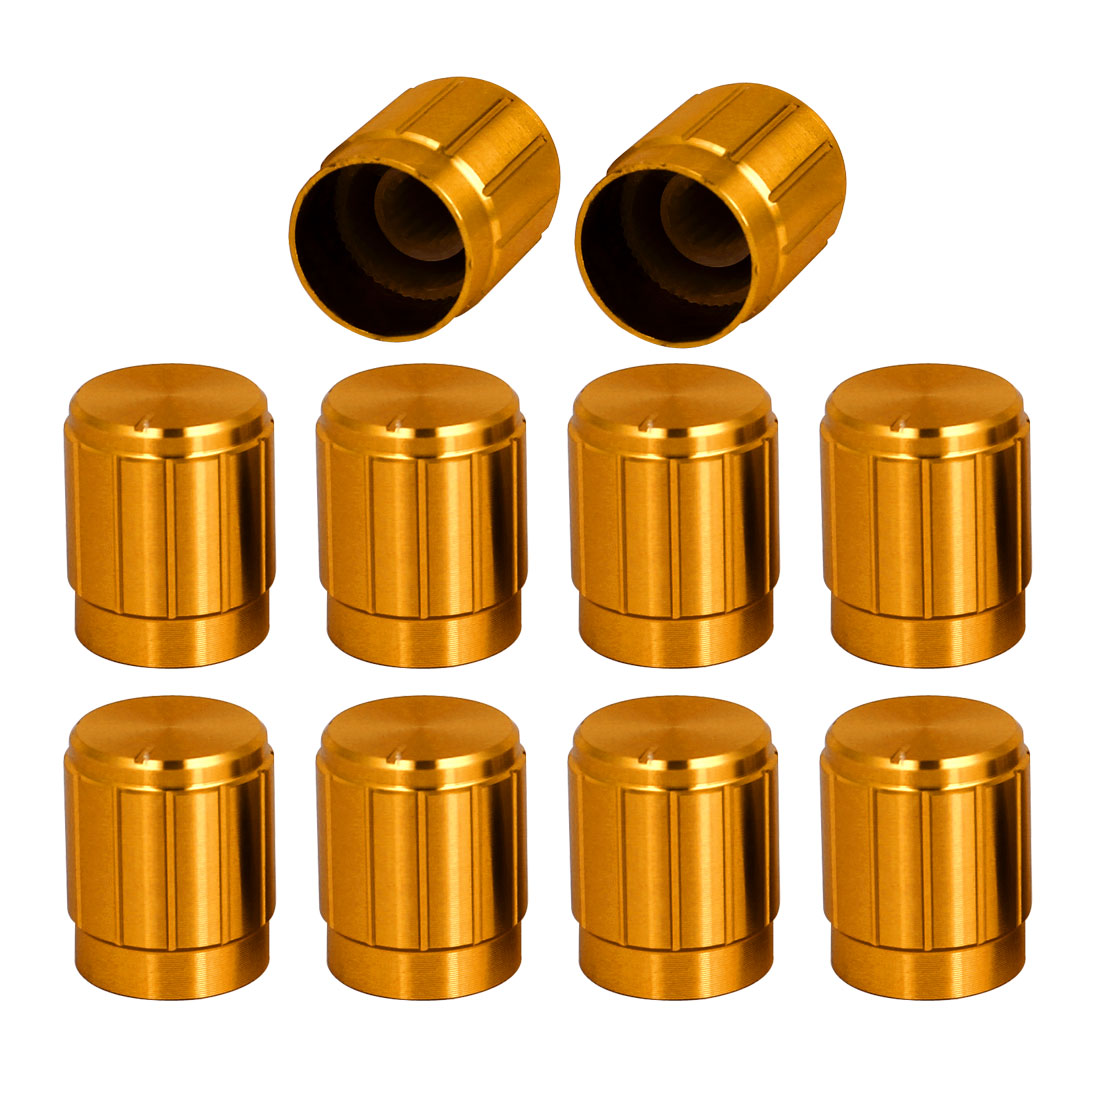 10pcs 14.8x18mm Gold Tone Aluminum Alloy Rotary Potentiometer Knobs Cap